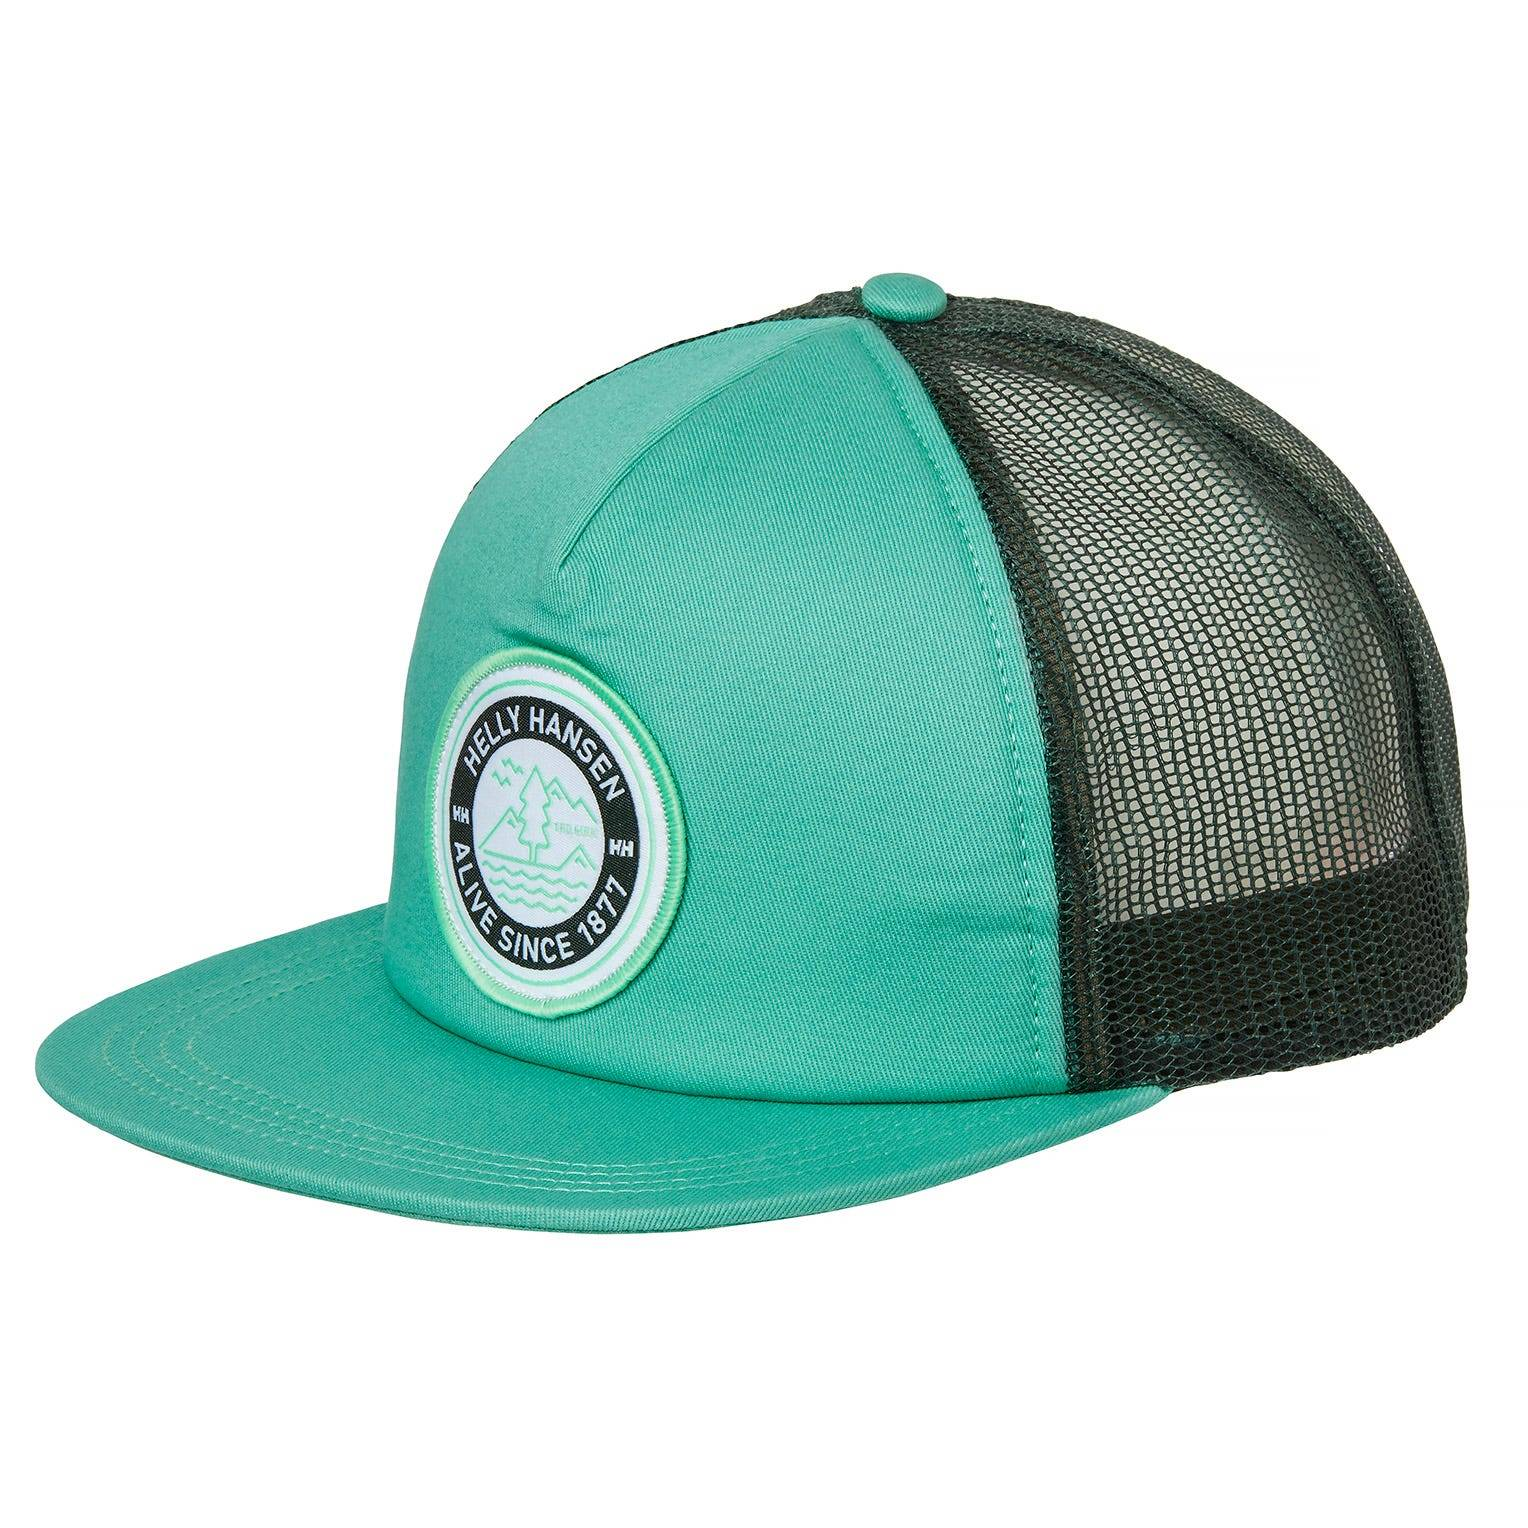 Helly Hansen Flatbrim Trucker Cap Green STD